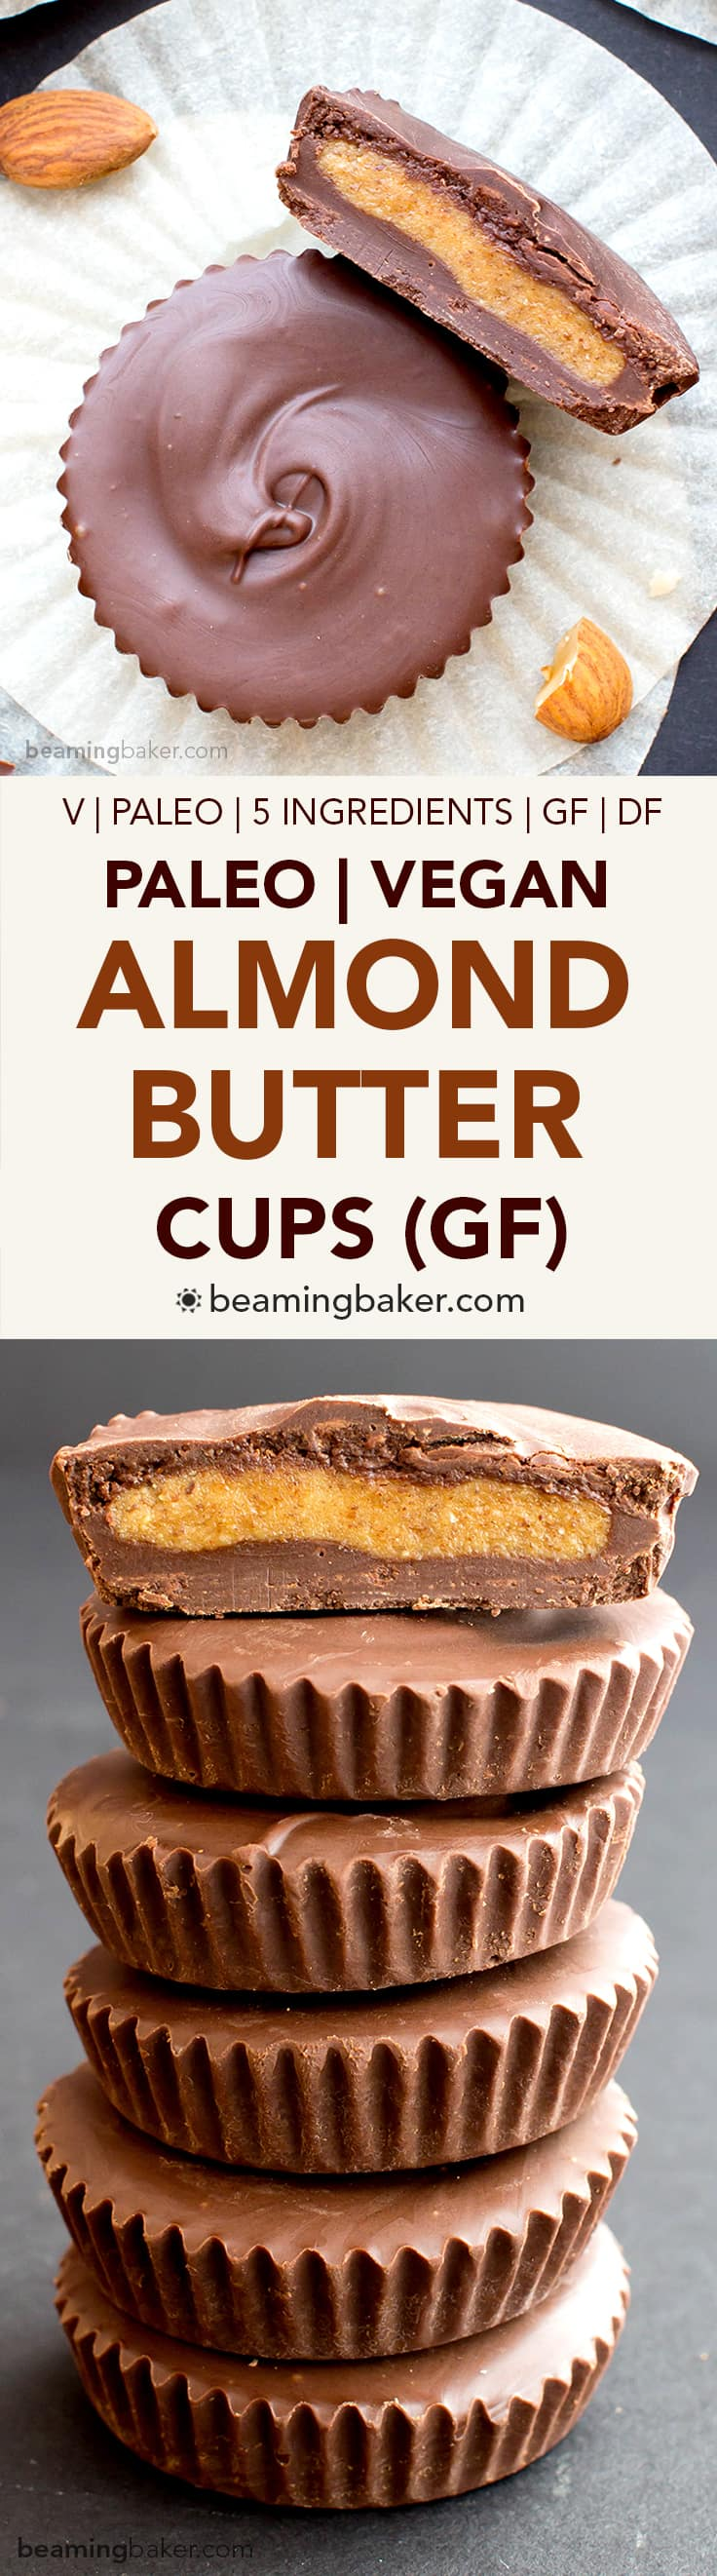 Paleo Almond Butter Cups (V, GF, DF): a 5 ingredient recipe for rich chocolate cups stuffed with smooth almond butter. #Paleo #Vegan #GlutenFree #DairyFree | BeamingBaker.com